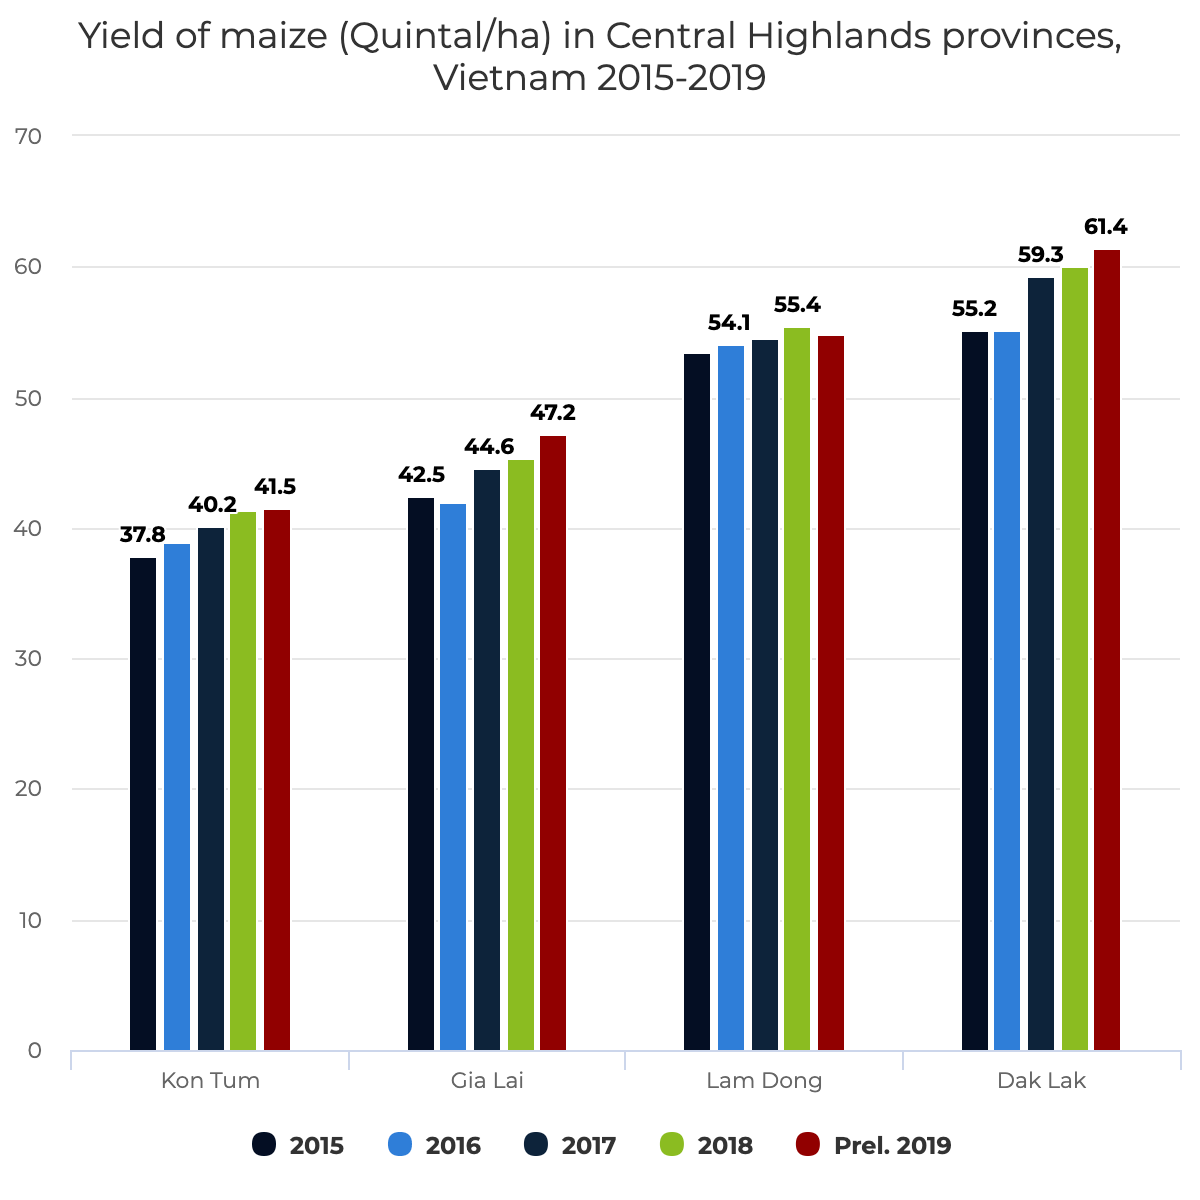 Yield of maize (Quintal/ha) in Central Highlands provinces, Vietnam 2015-2019